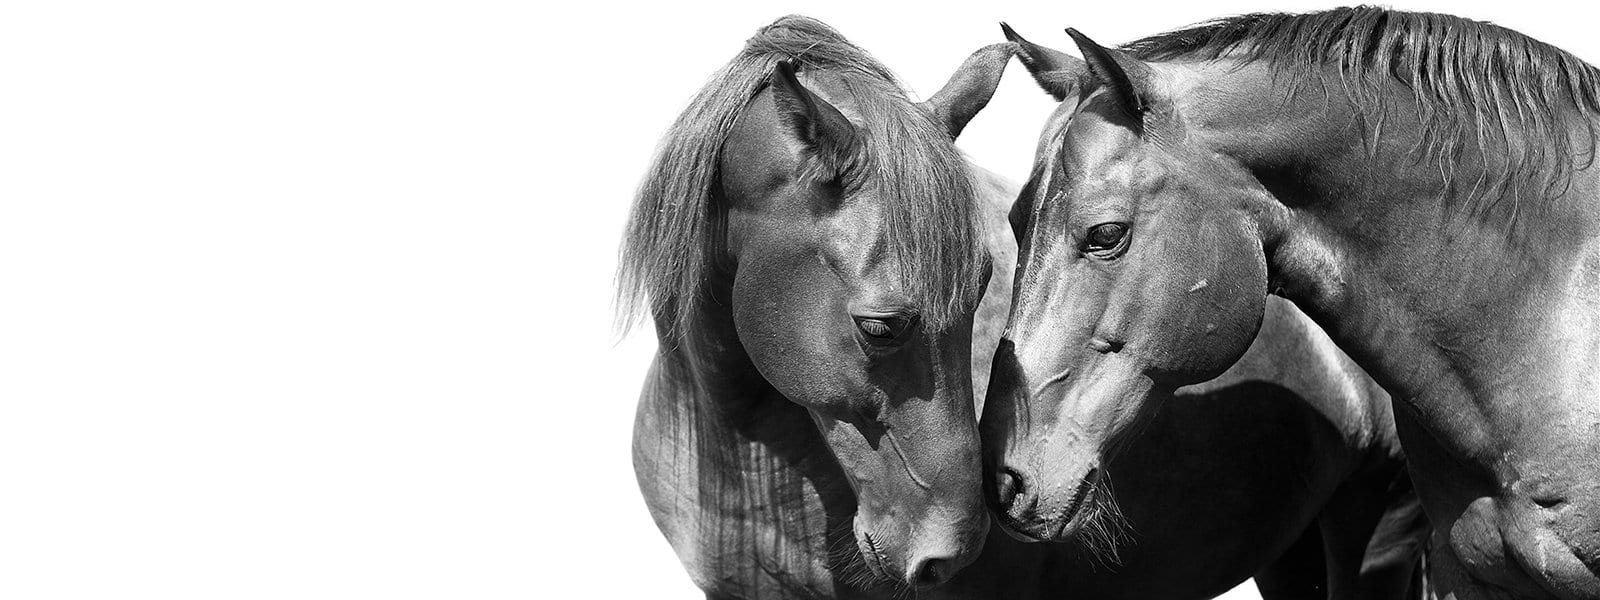 A black-and-white photo shows two horses touching noses.